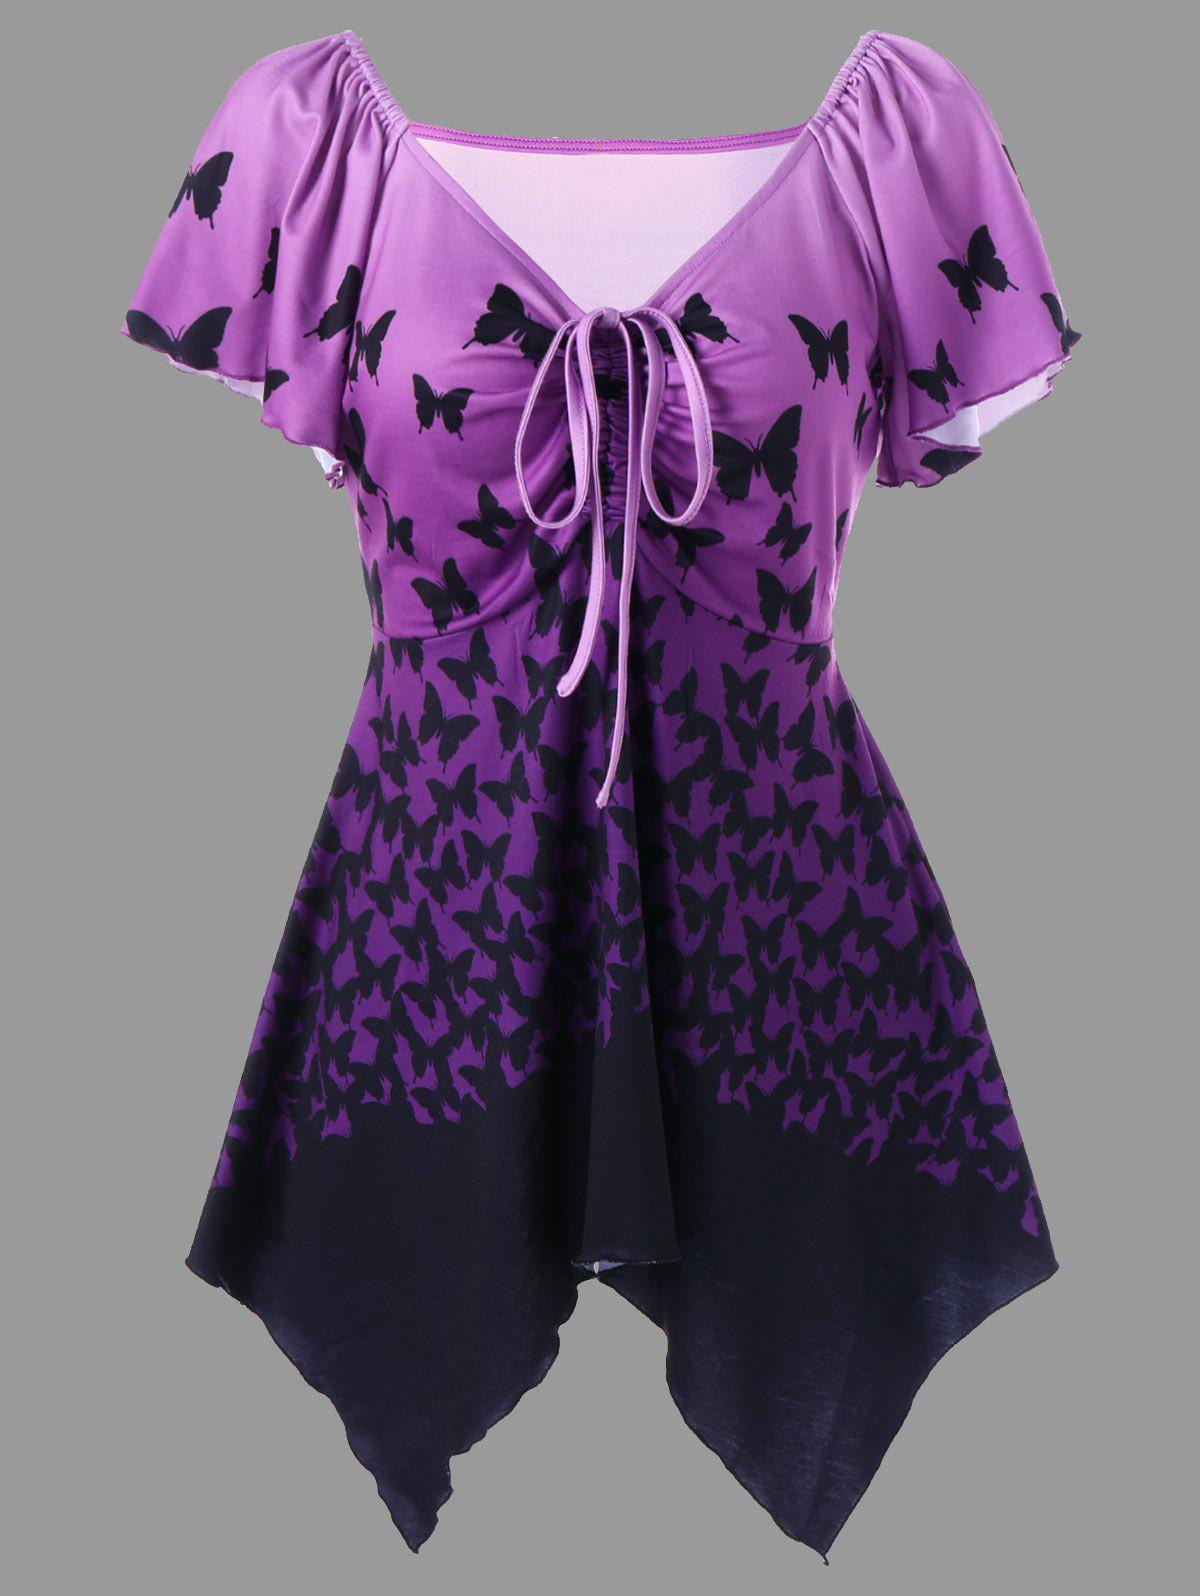 Plus Size Butterfly Print Empire Waist T-Shirt - PURPLE XL